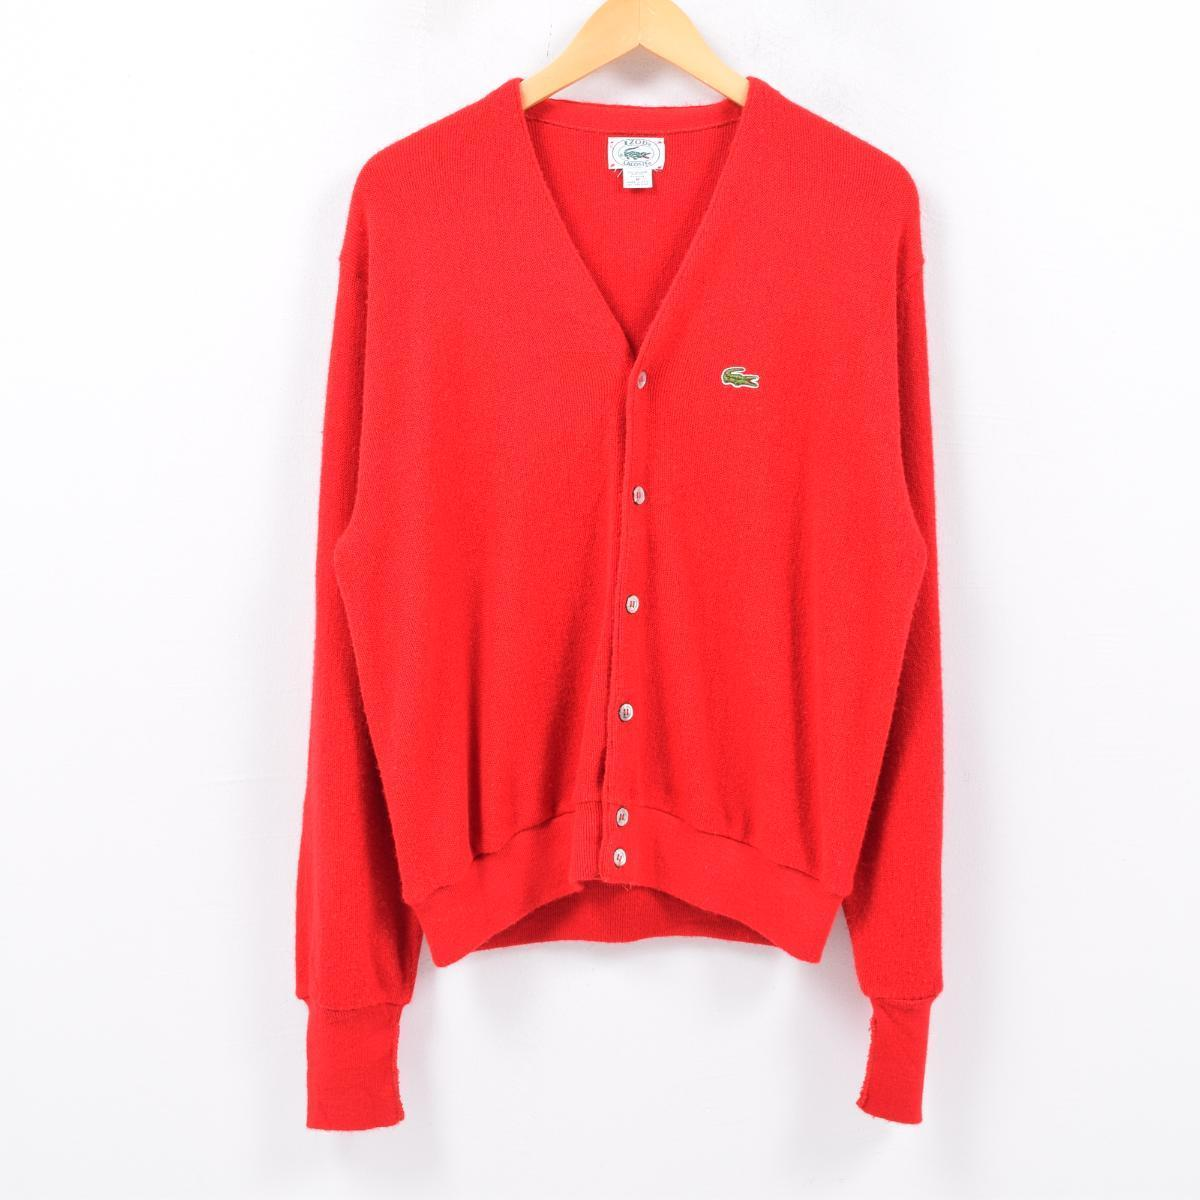 baa9f180f Men XL vintage  wbc4806 in the 80s made in Lacoste LACOSTE IZOD acrylic  knit cardigan USA